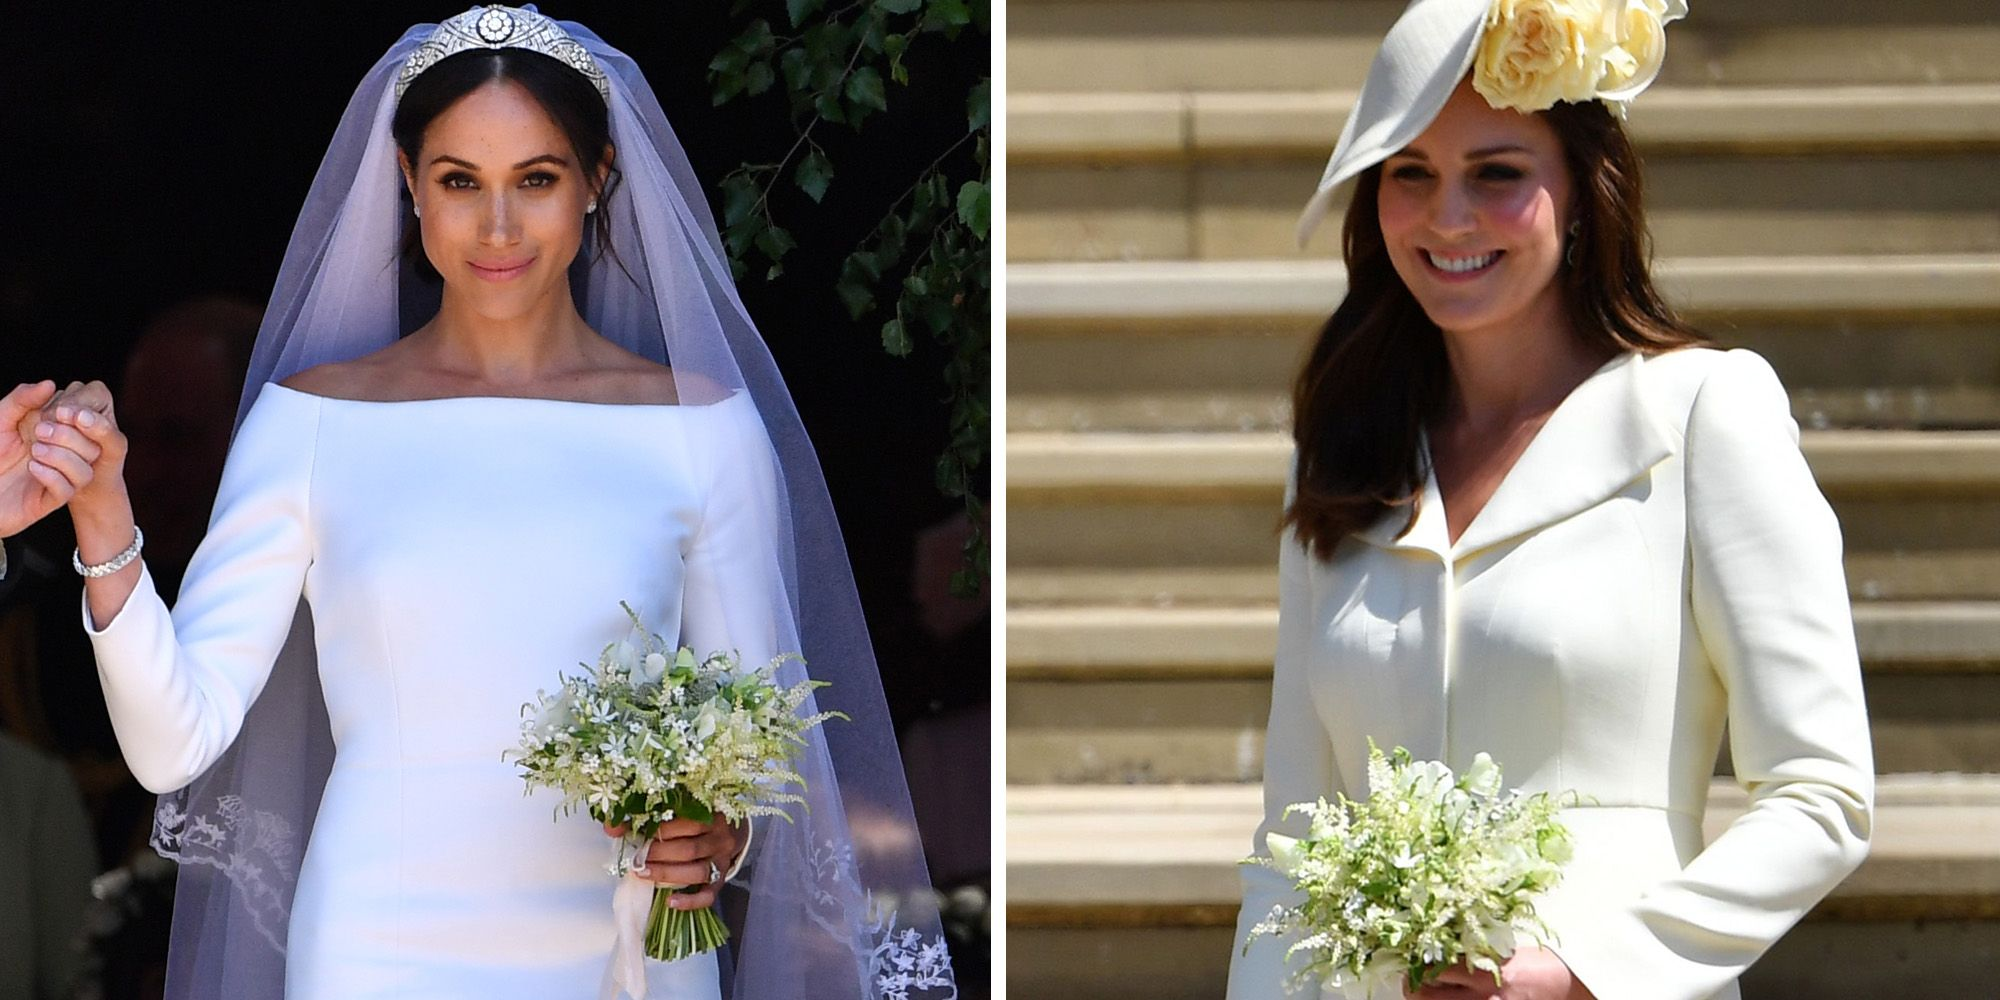 Did Kate Middleton Give Meghan Markle Her Bouquet At The Royal Wedding